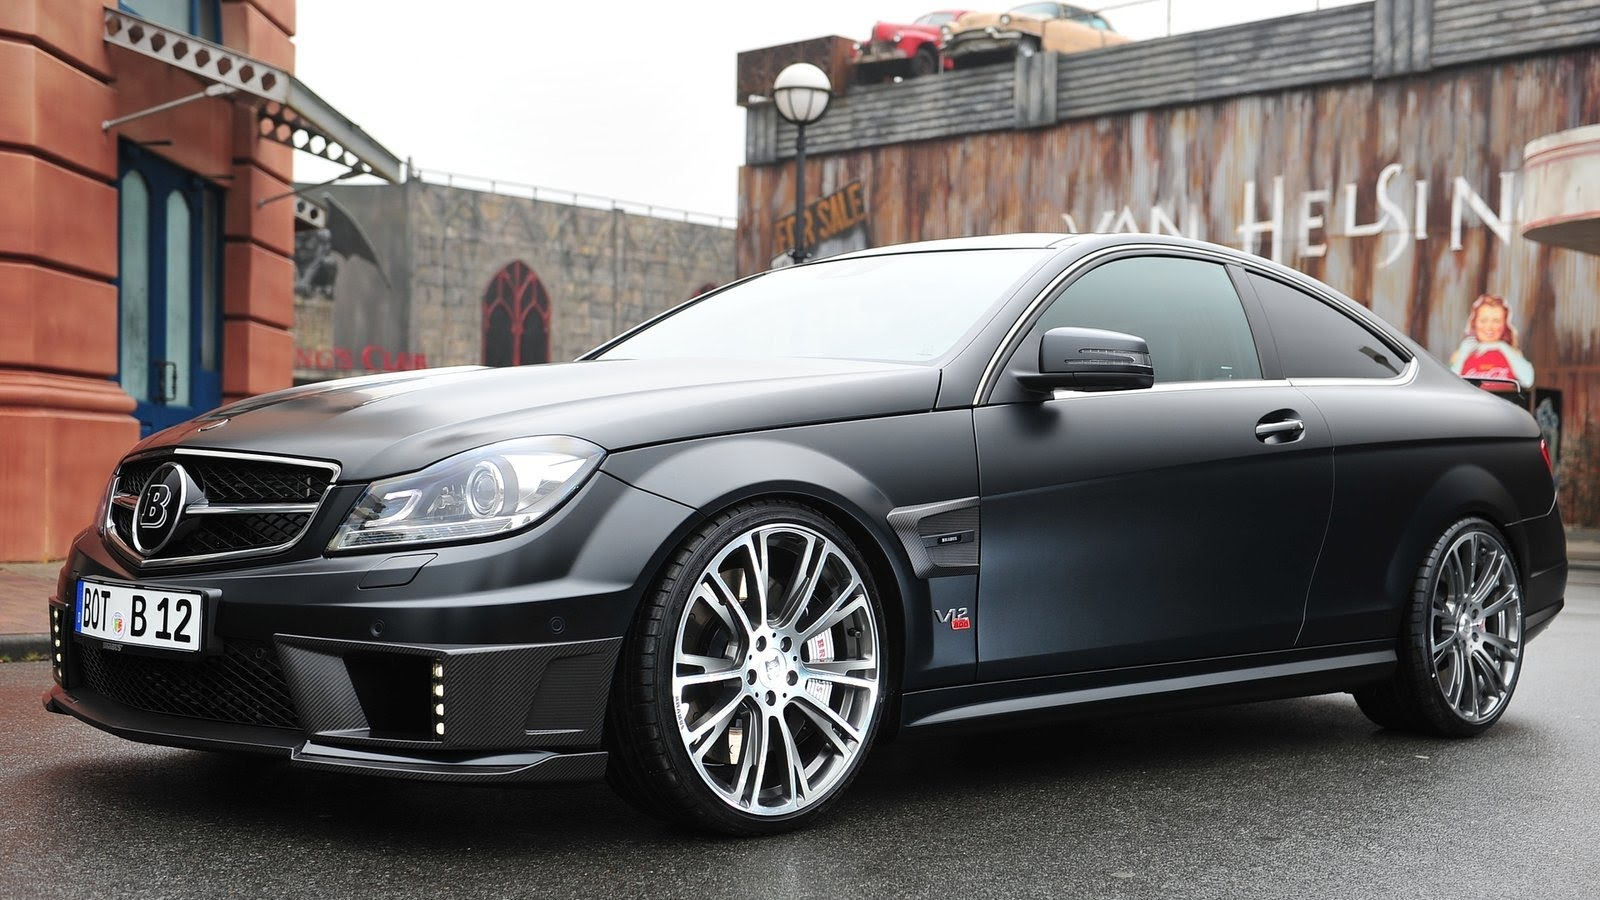 Brabus bullit photo - 8